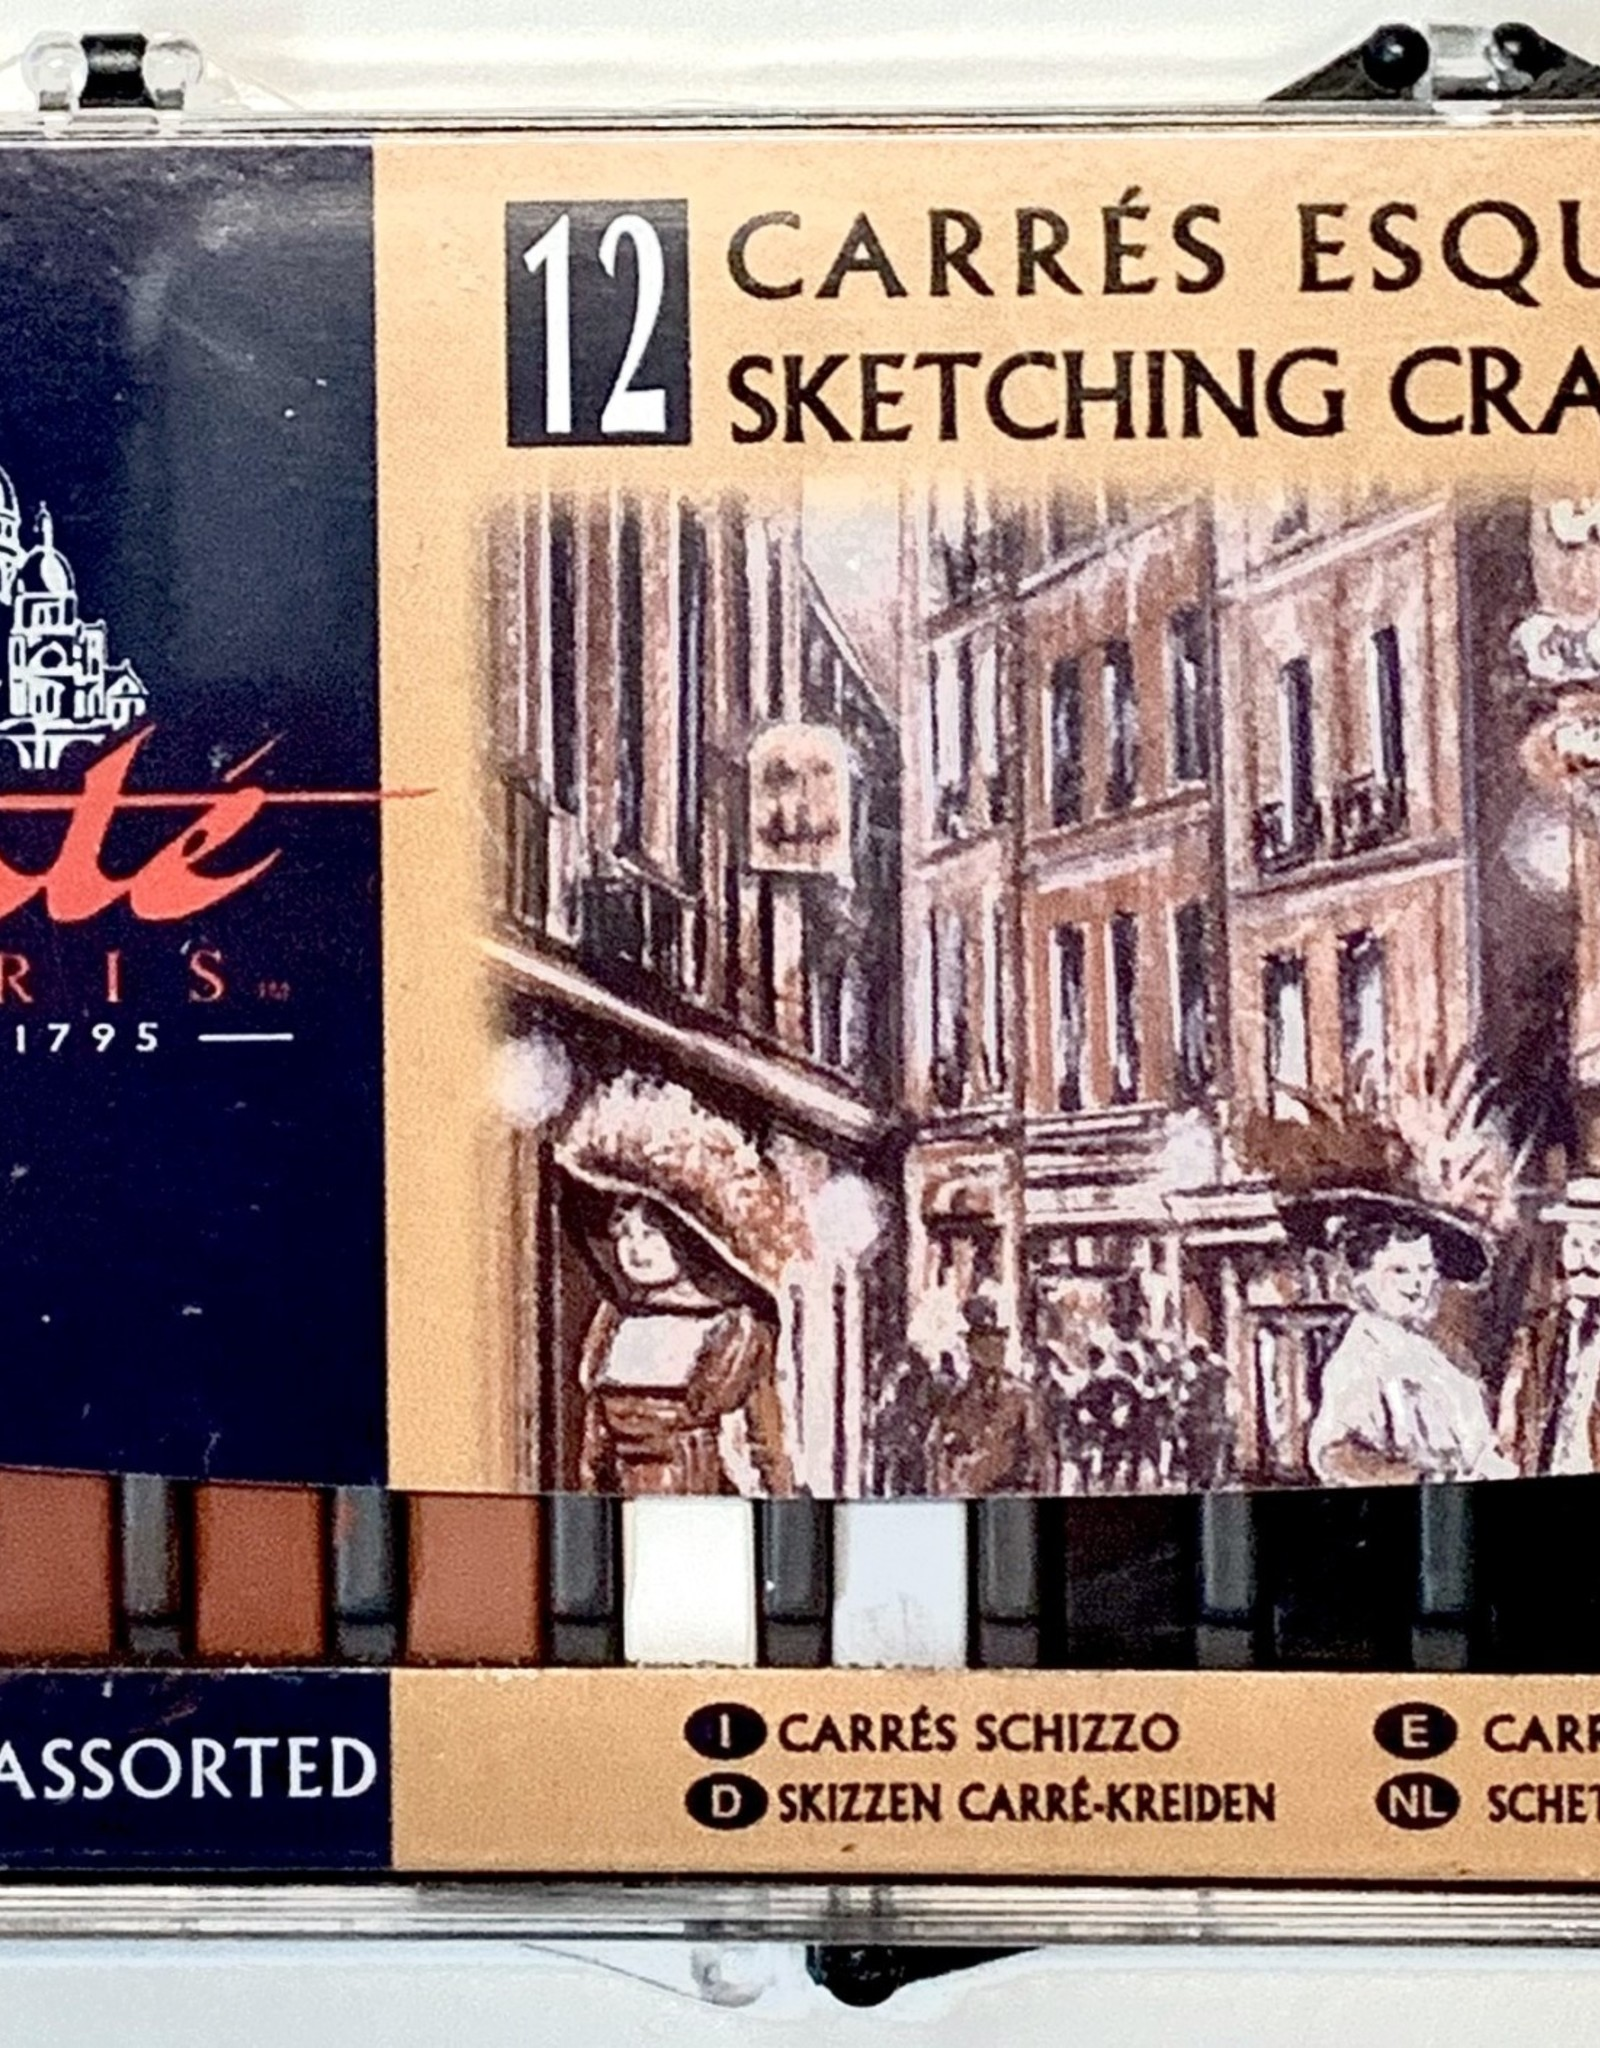 Conte Sketching Crayons, Assorted 12 Pack